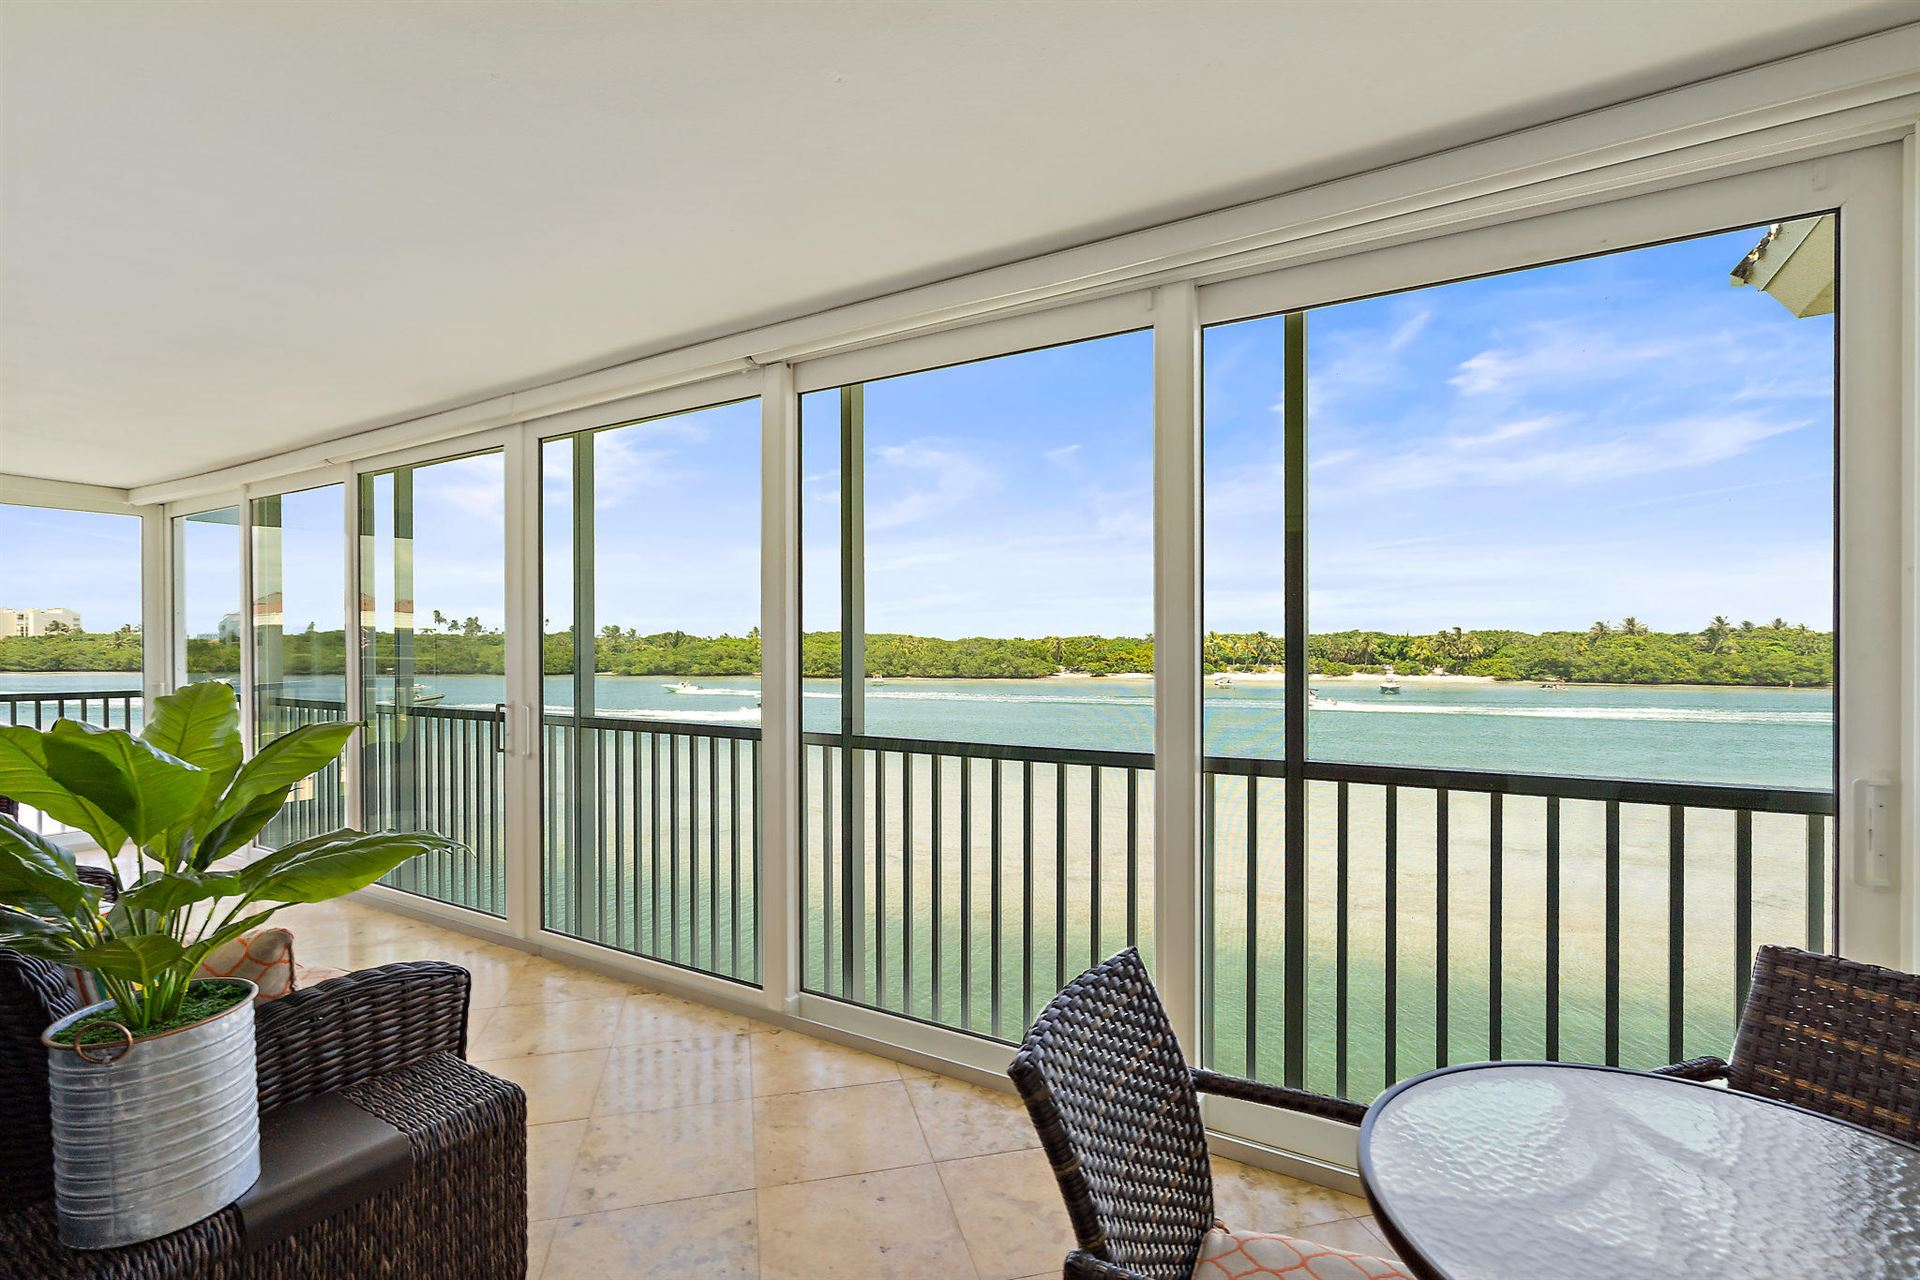 100 Waterway Road #E307, Tequesta, FL 33469 - #: RX-10637675